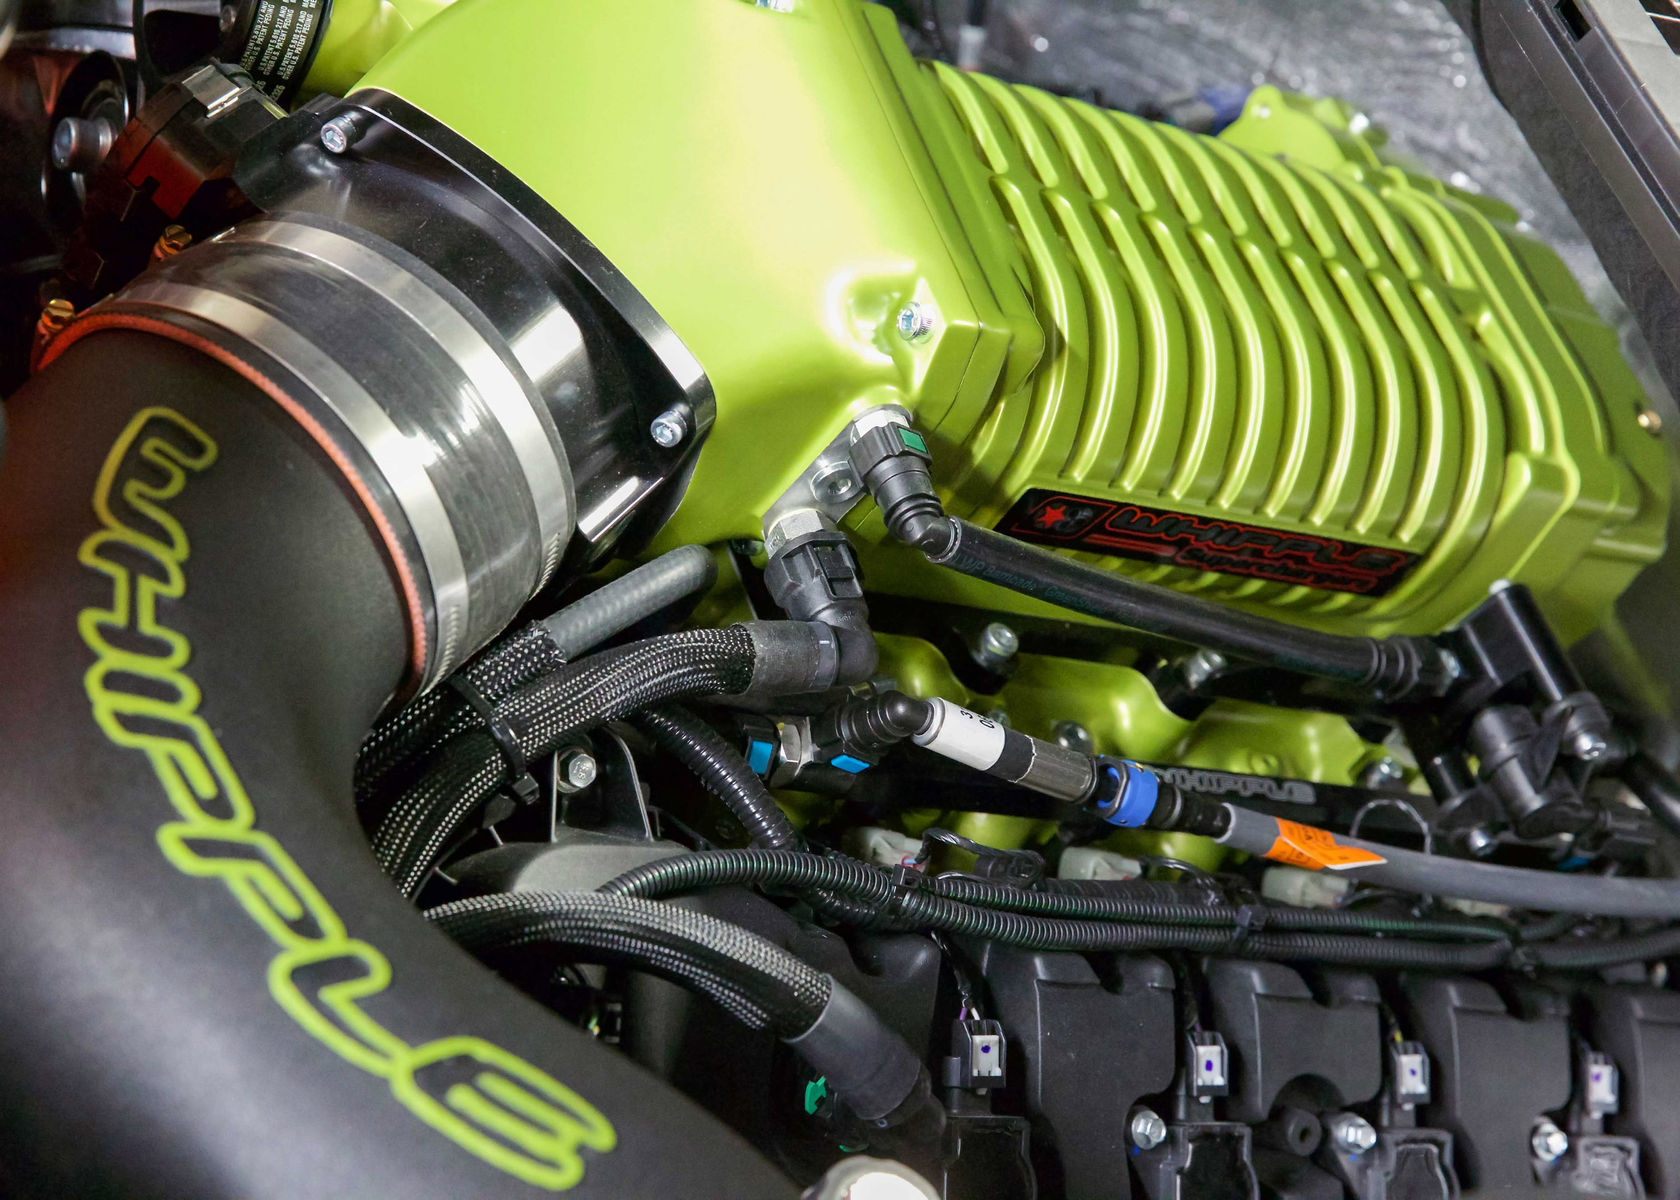 2016 Ford F-150 4x2 XLT SuperCrew by Hulst Customs - Green